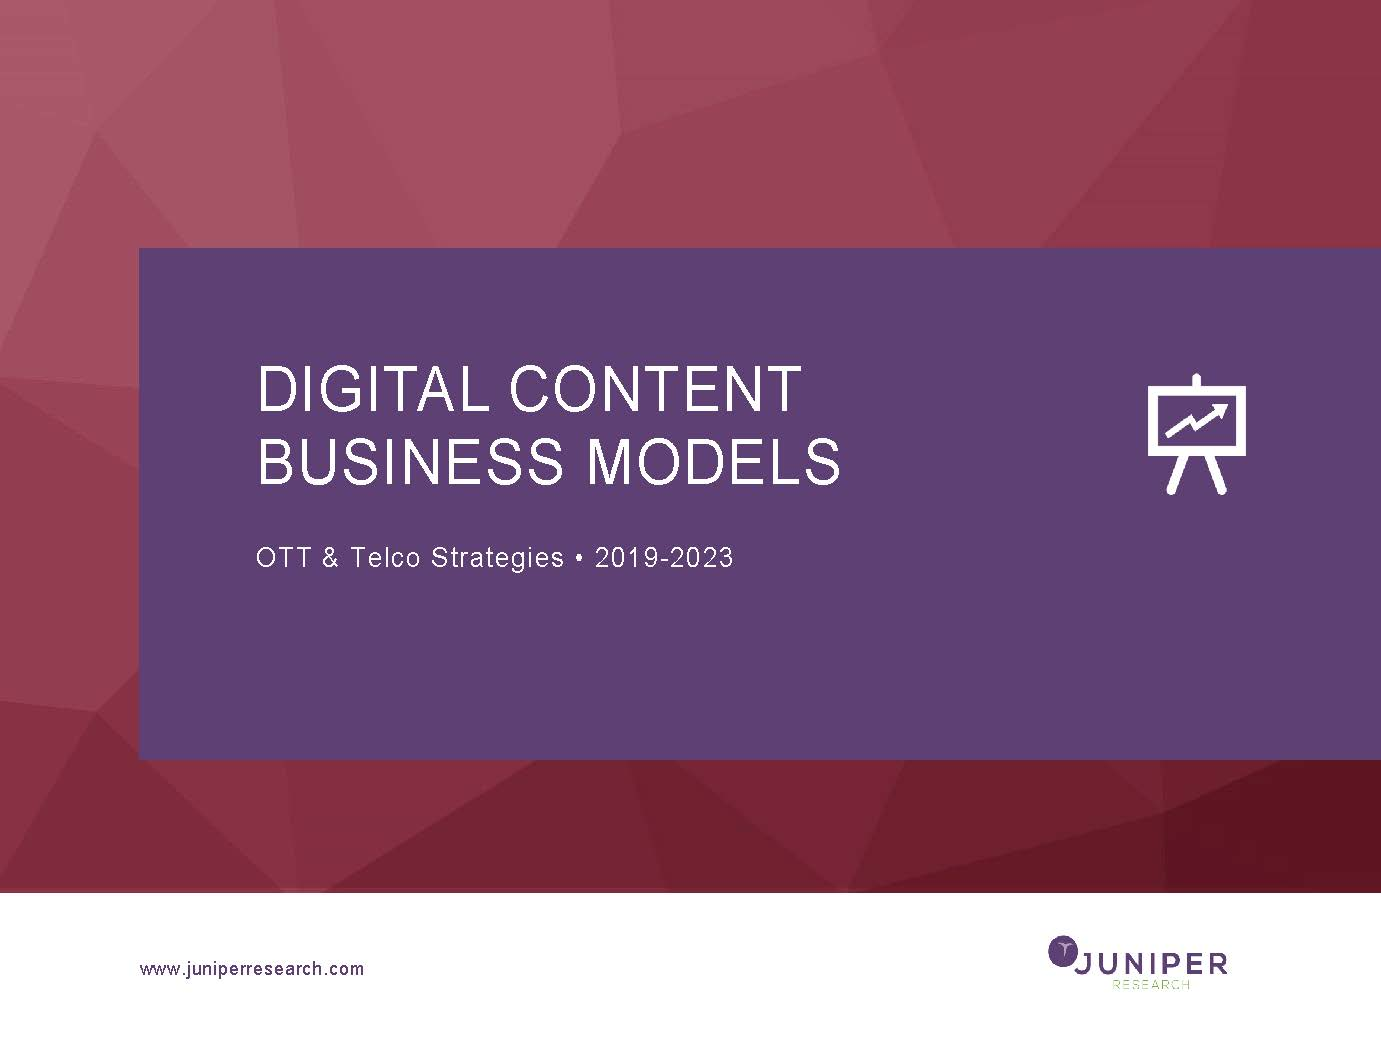 Digital Content Business Models